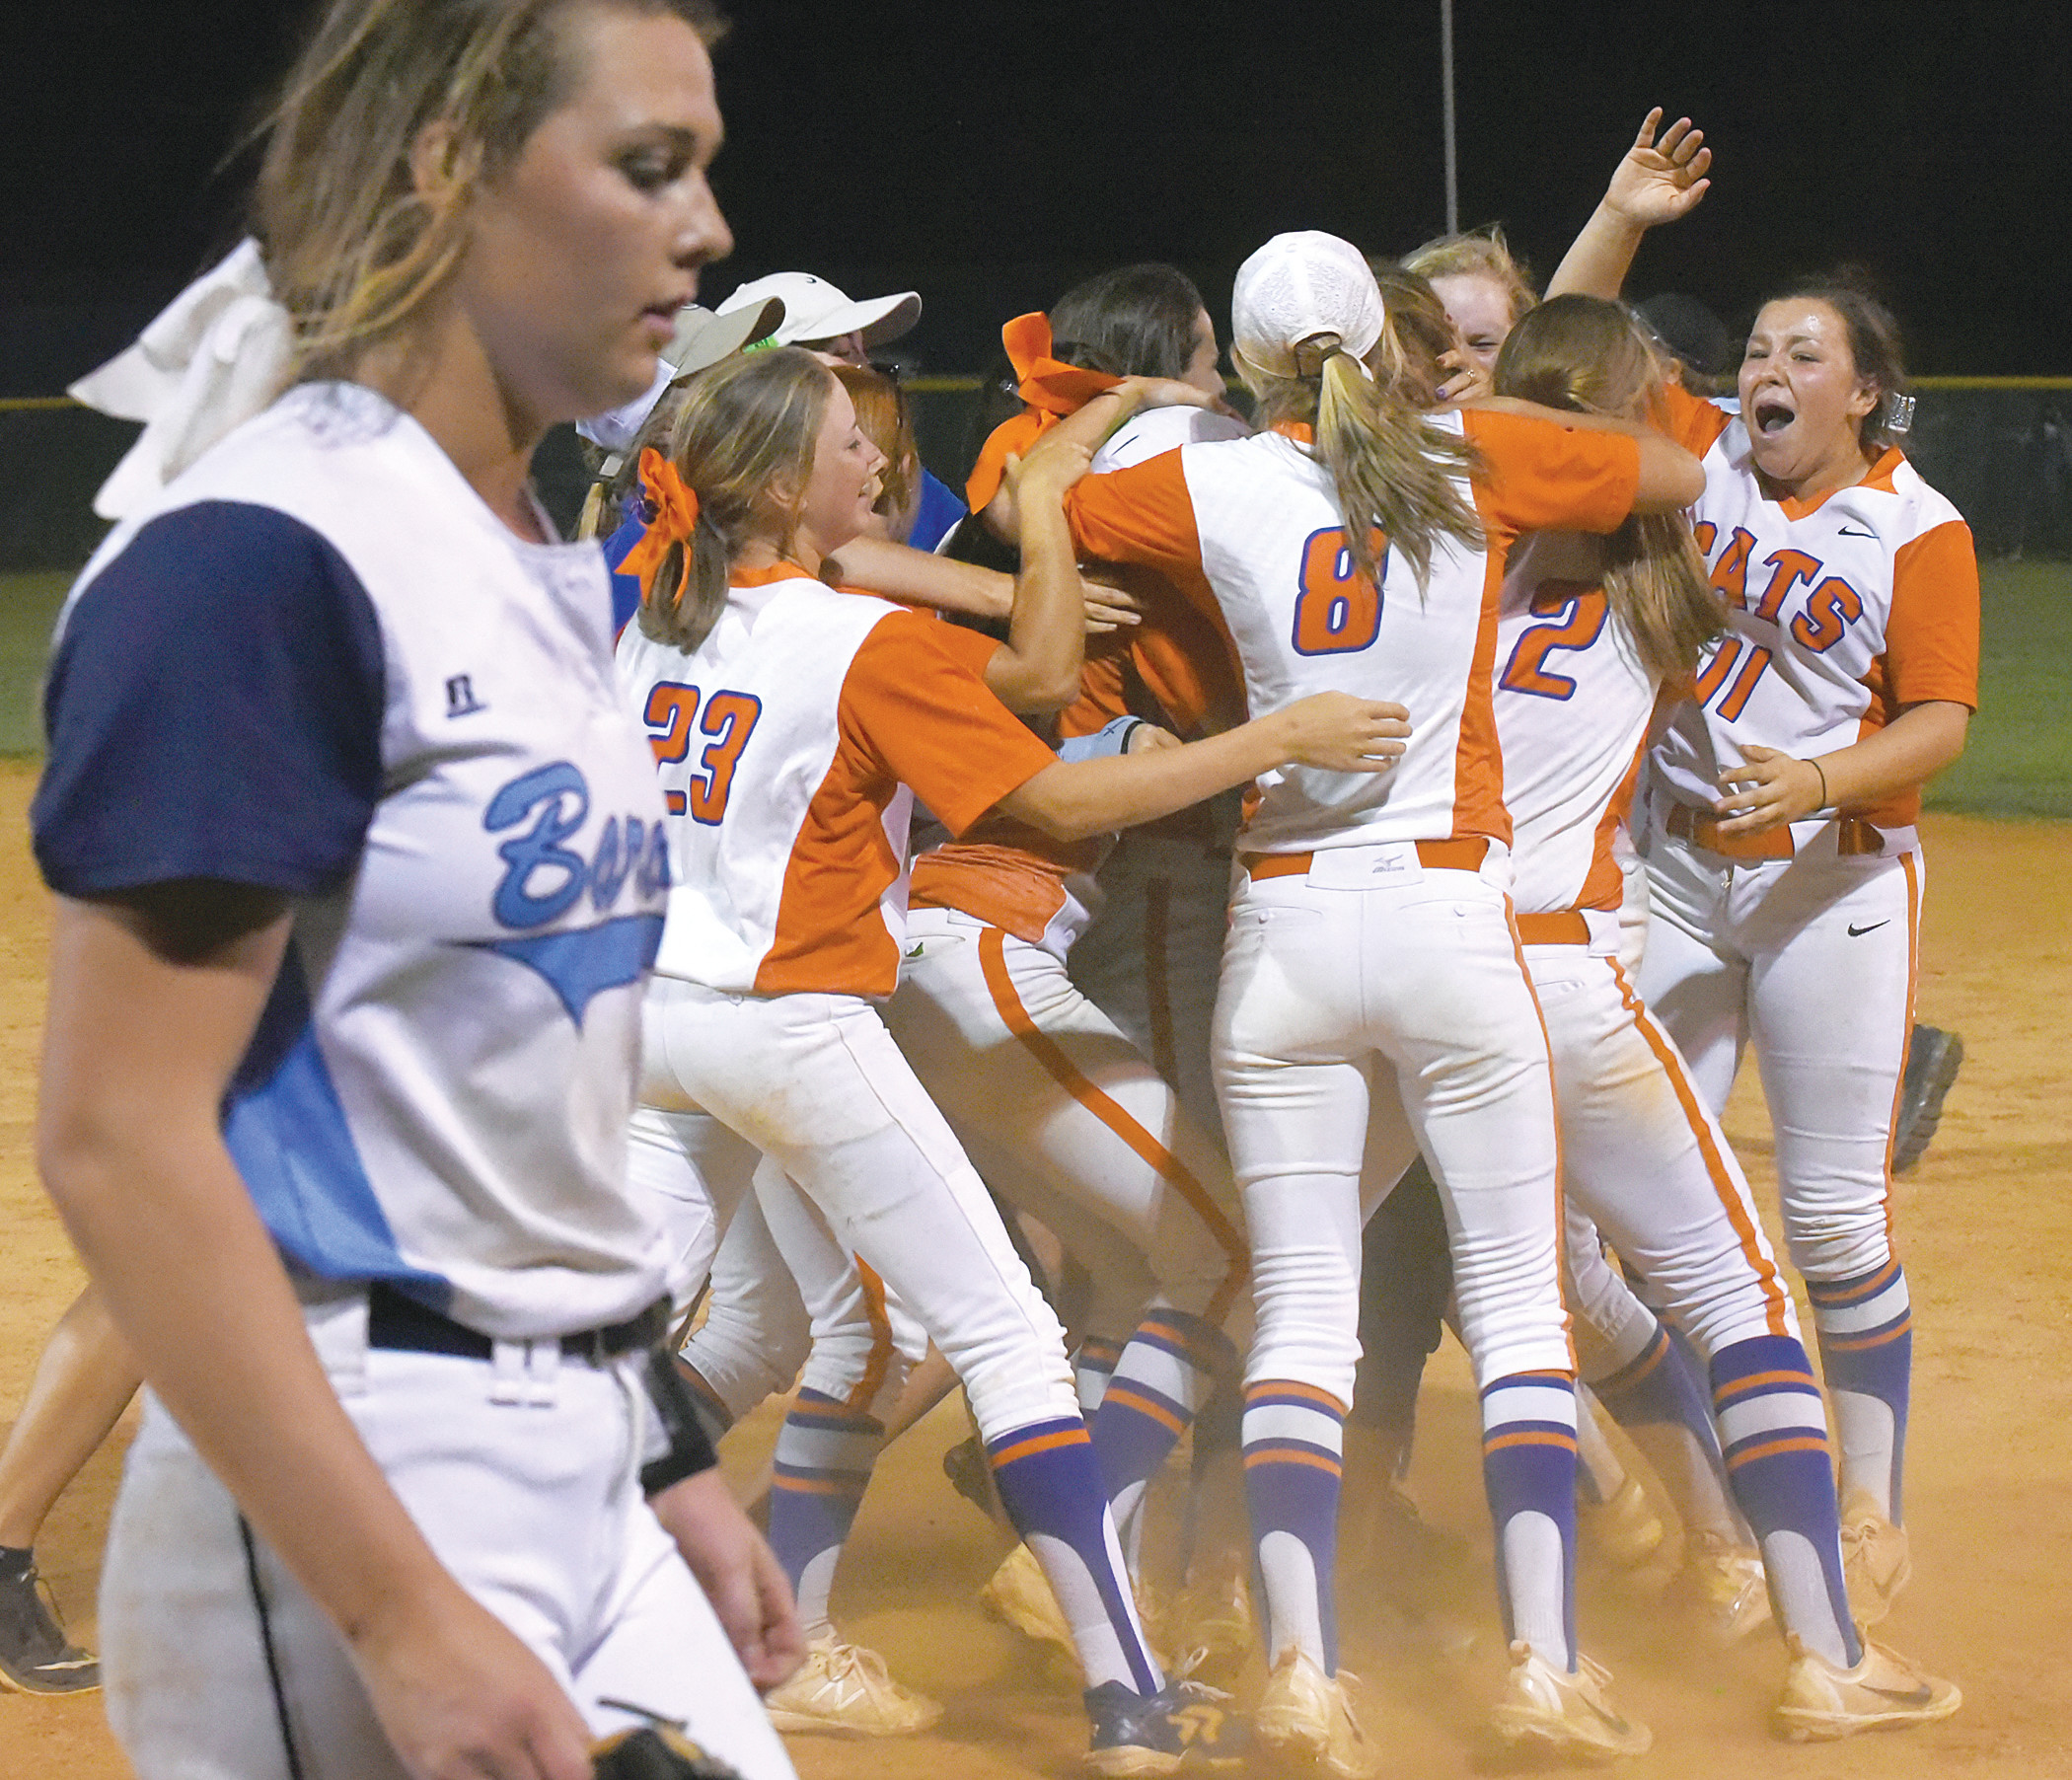 The Laurence Manning Academy softball team celebrates after defeating Wilson Hall 3-2 in eight innings to defend its SCISA 3A state championship on Wednesday at the Lakewood High School field. The Lady Swampcats scored a run in the bottom of the seventh to tie the game and won it in the eighth.